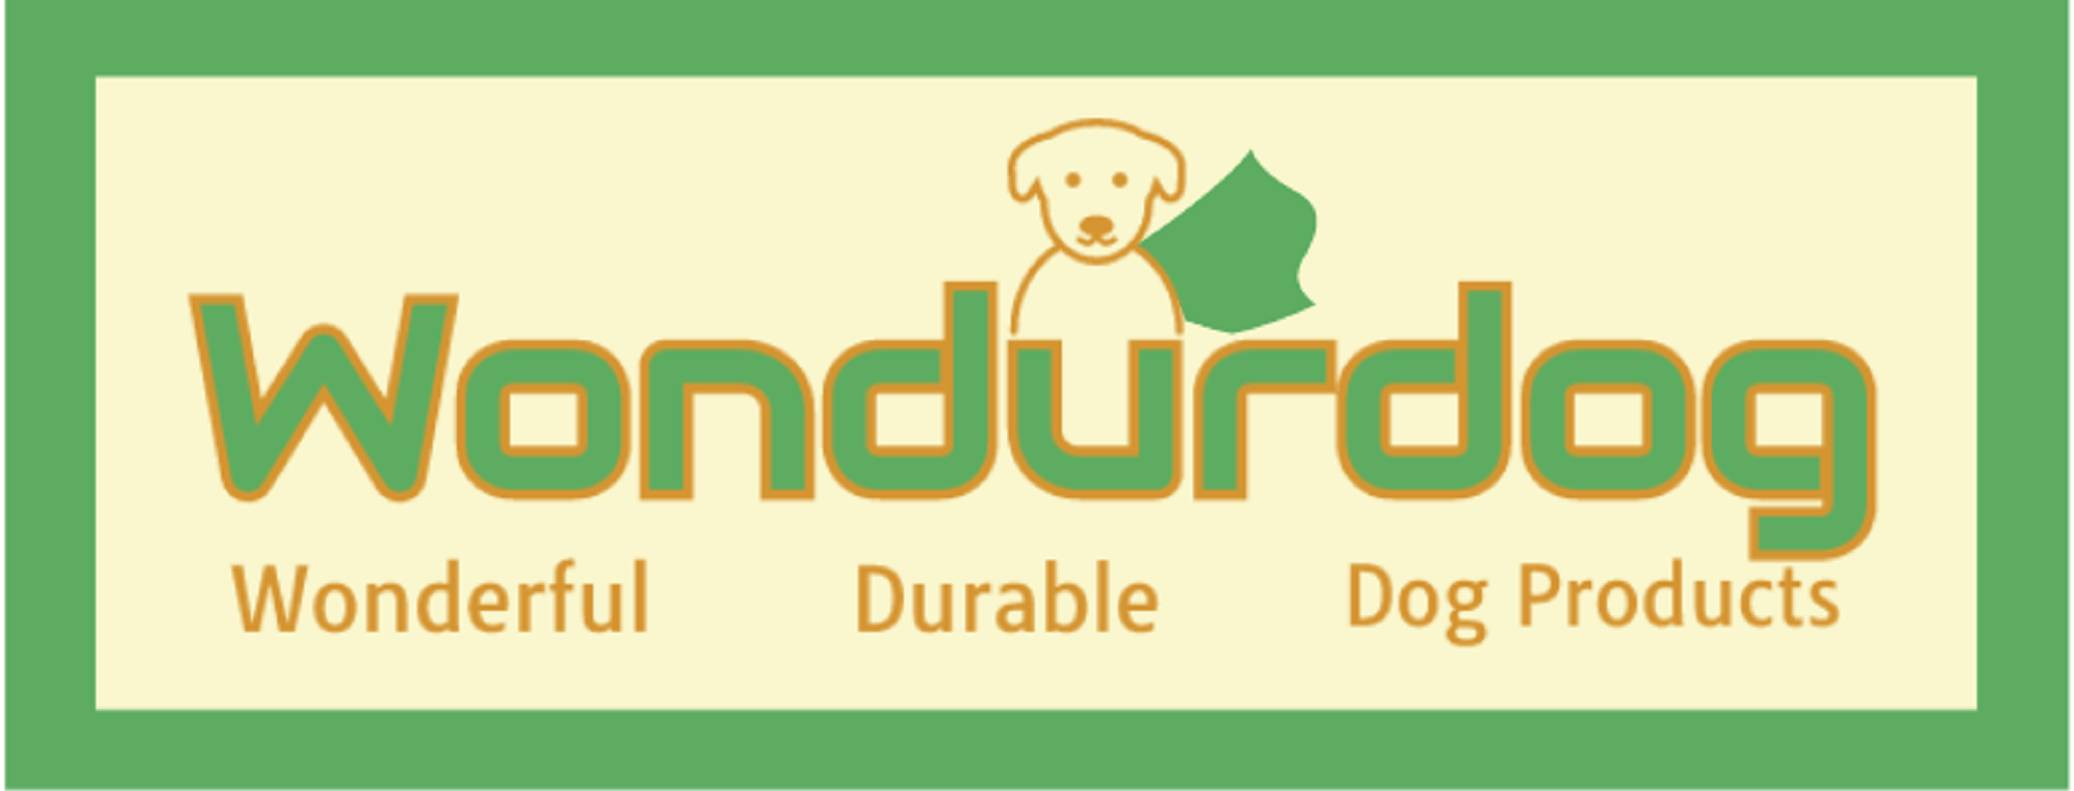 Pet shower Logo